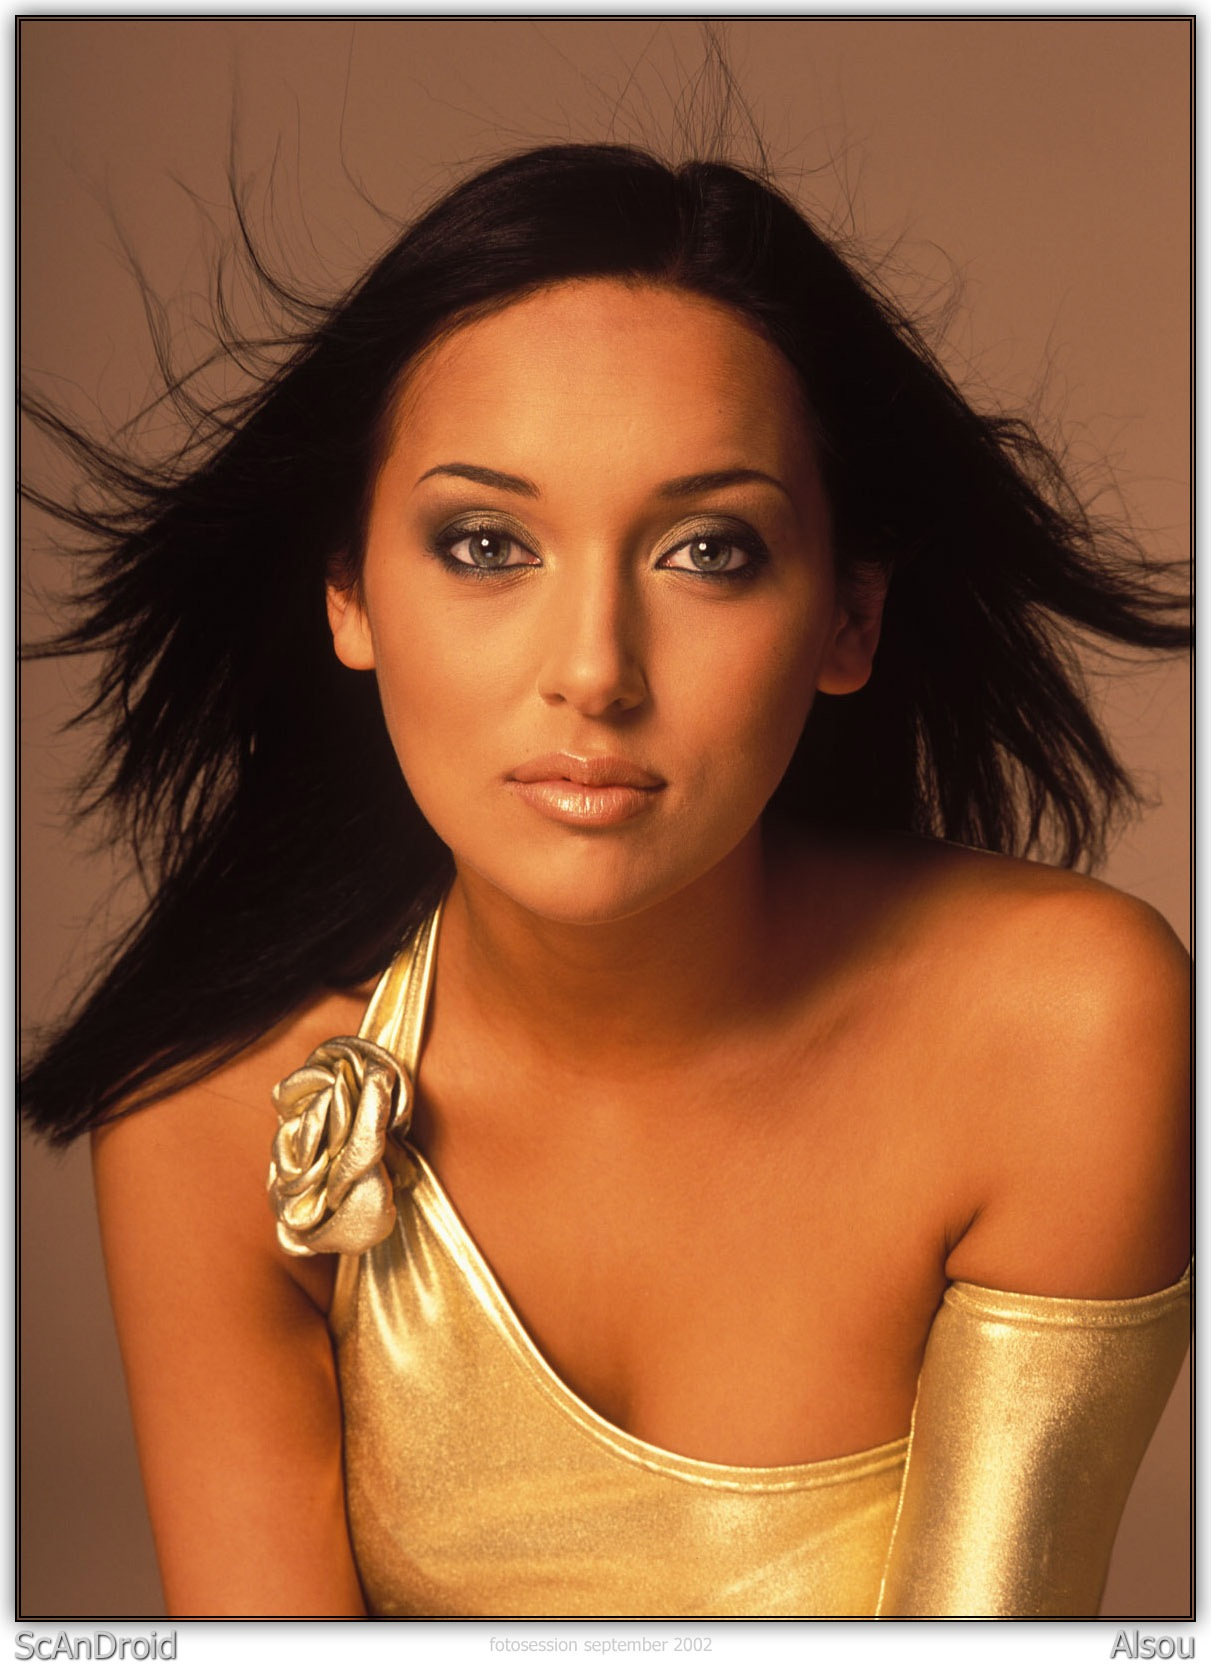 Alsou Beautifull